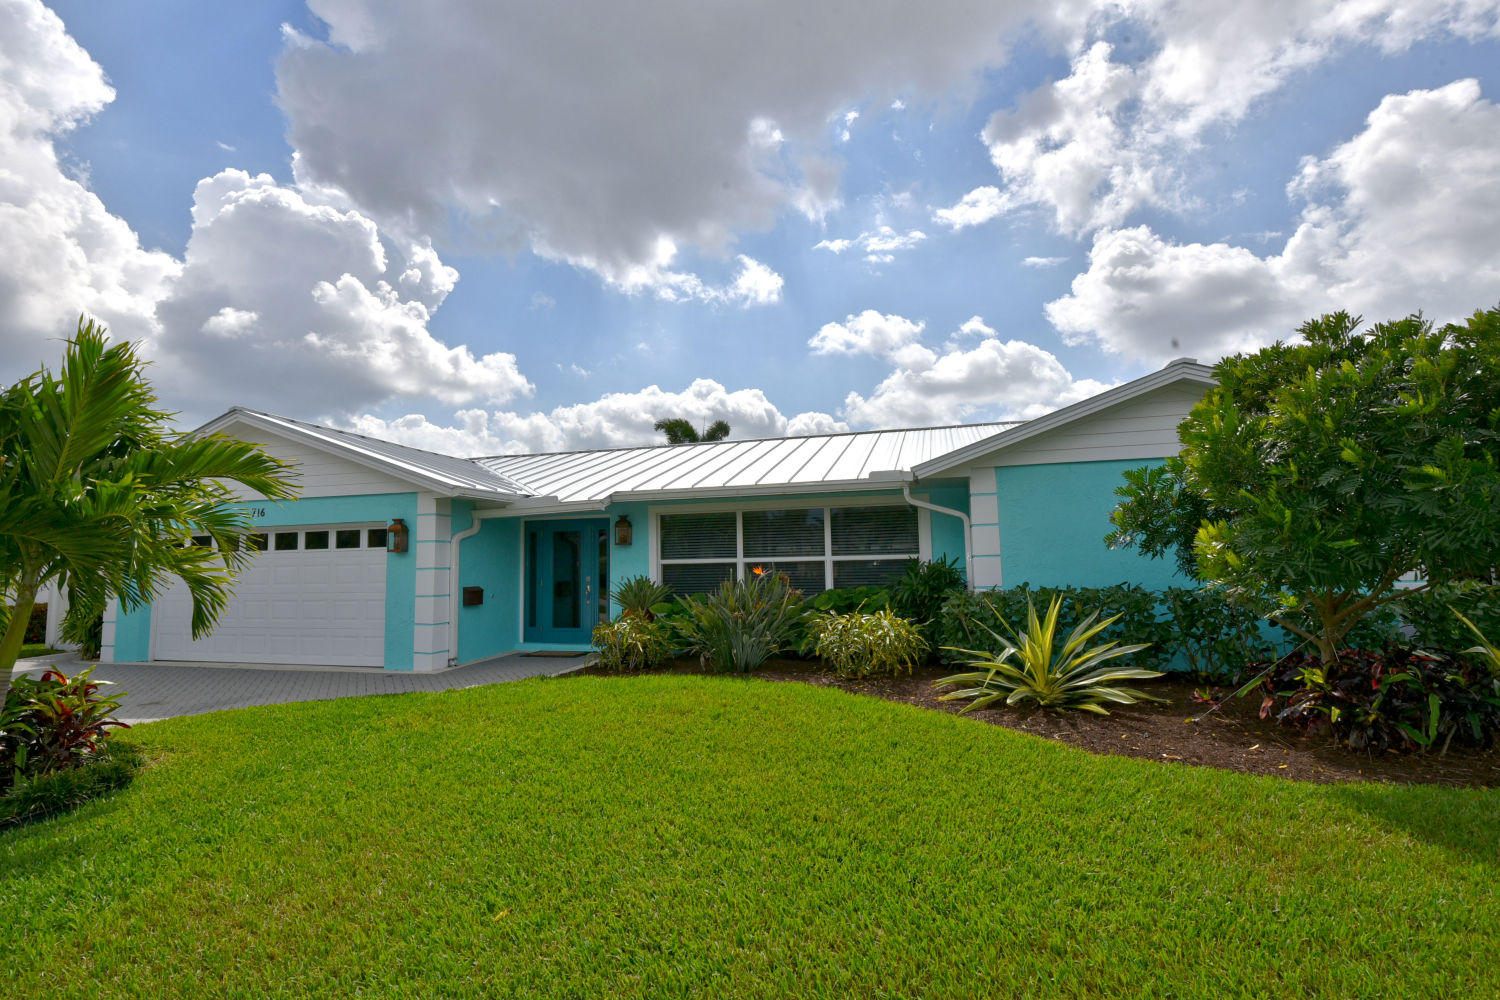 716 Jacana Way, North Palm Beach, Florida 33408, 3 Bedrooms Bedrooms, ,2 BathroomsBathrooms,A,Single family,Jacana,RX-10603415